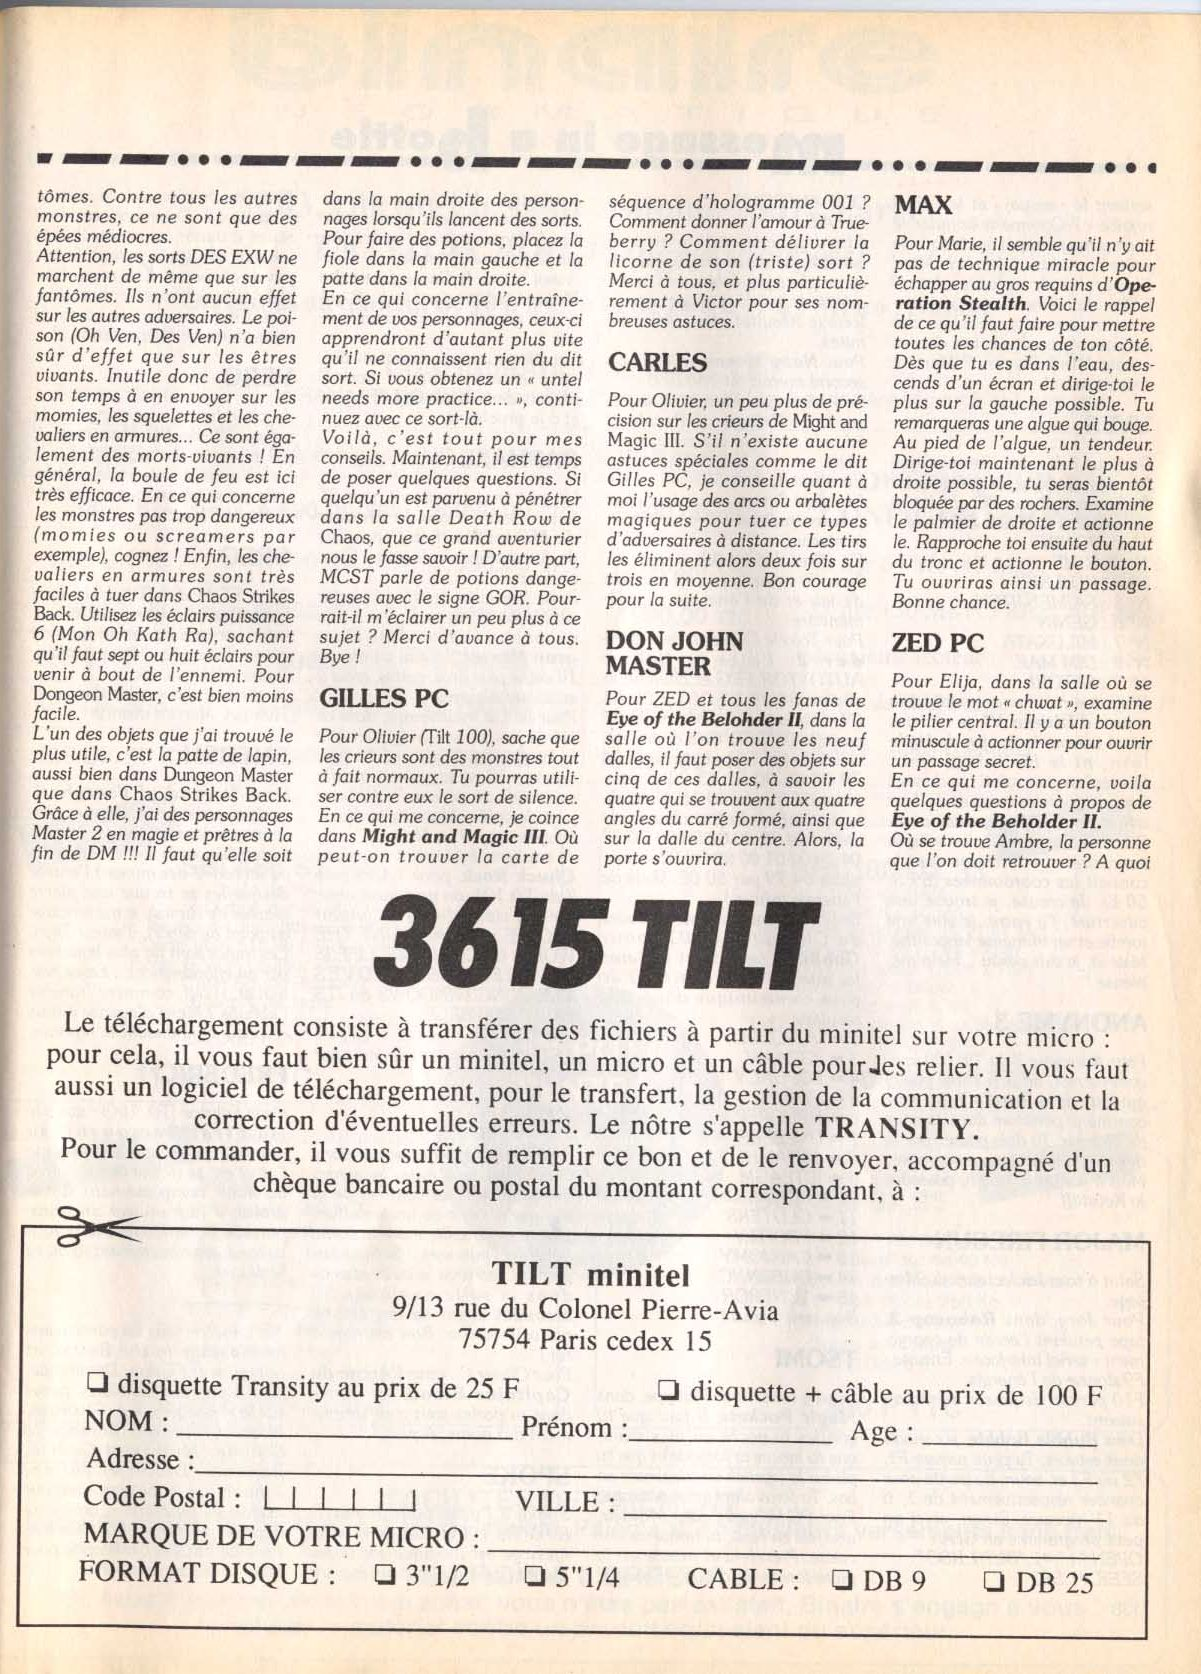 Dungeon Master and Chaos Strikes Back Hints published in French magazine 'Tilt', Issue #103, June 1992, Page 137